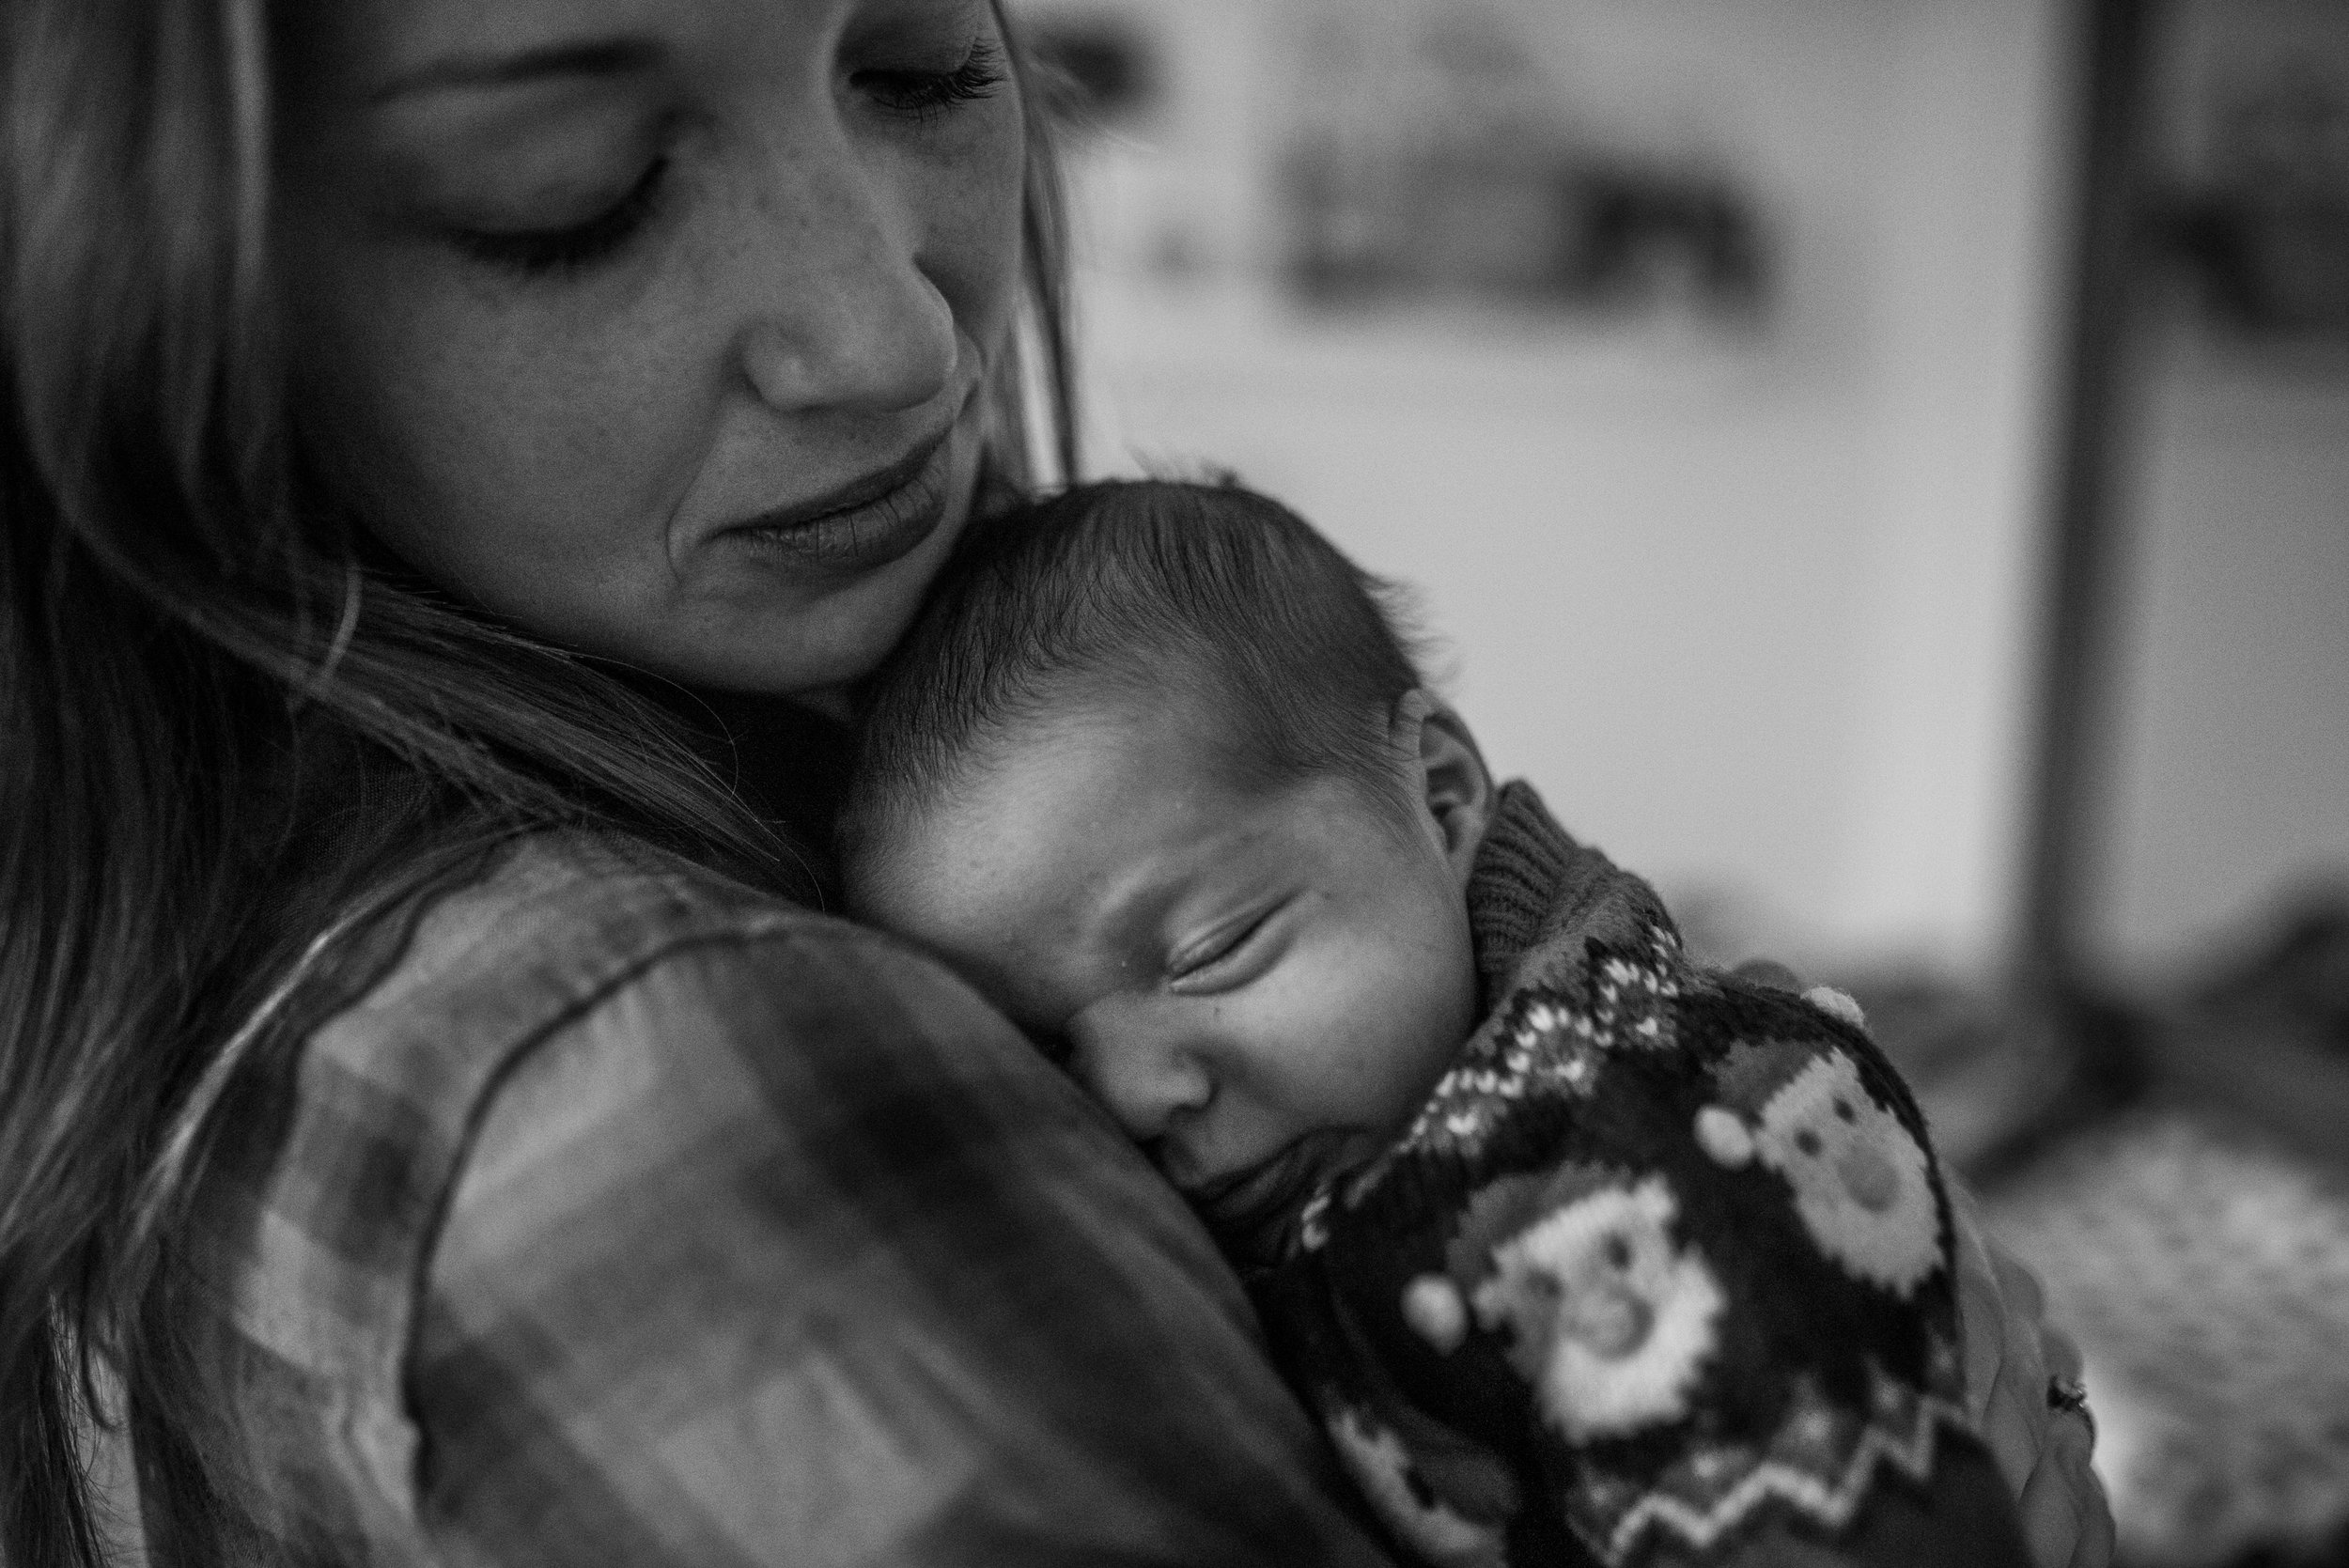 Mom holding newborn baby, both mom and baby have eyes closed